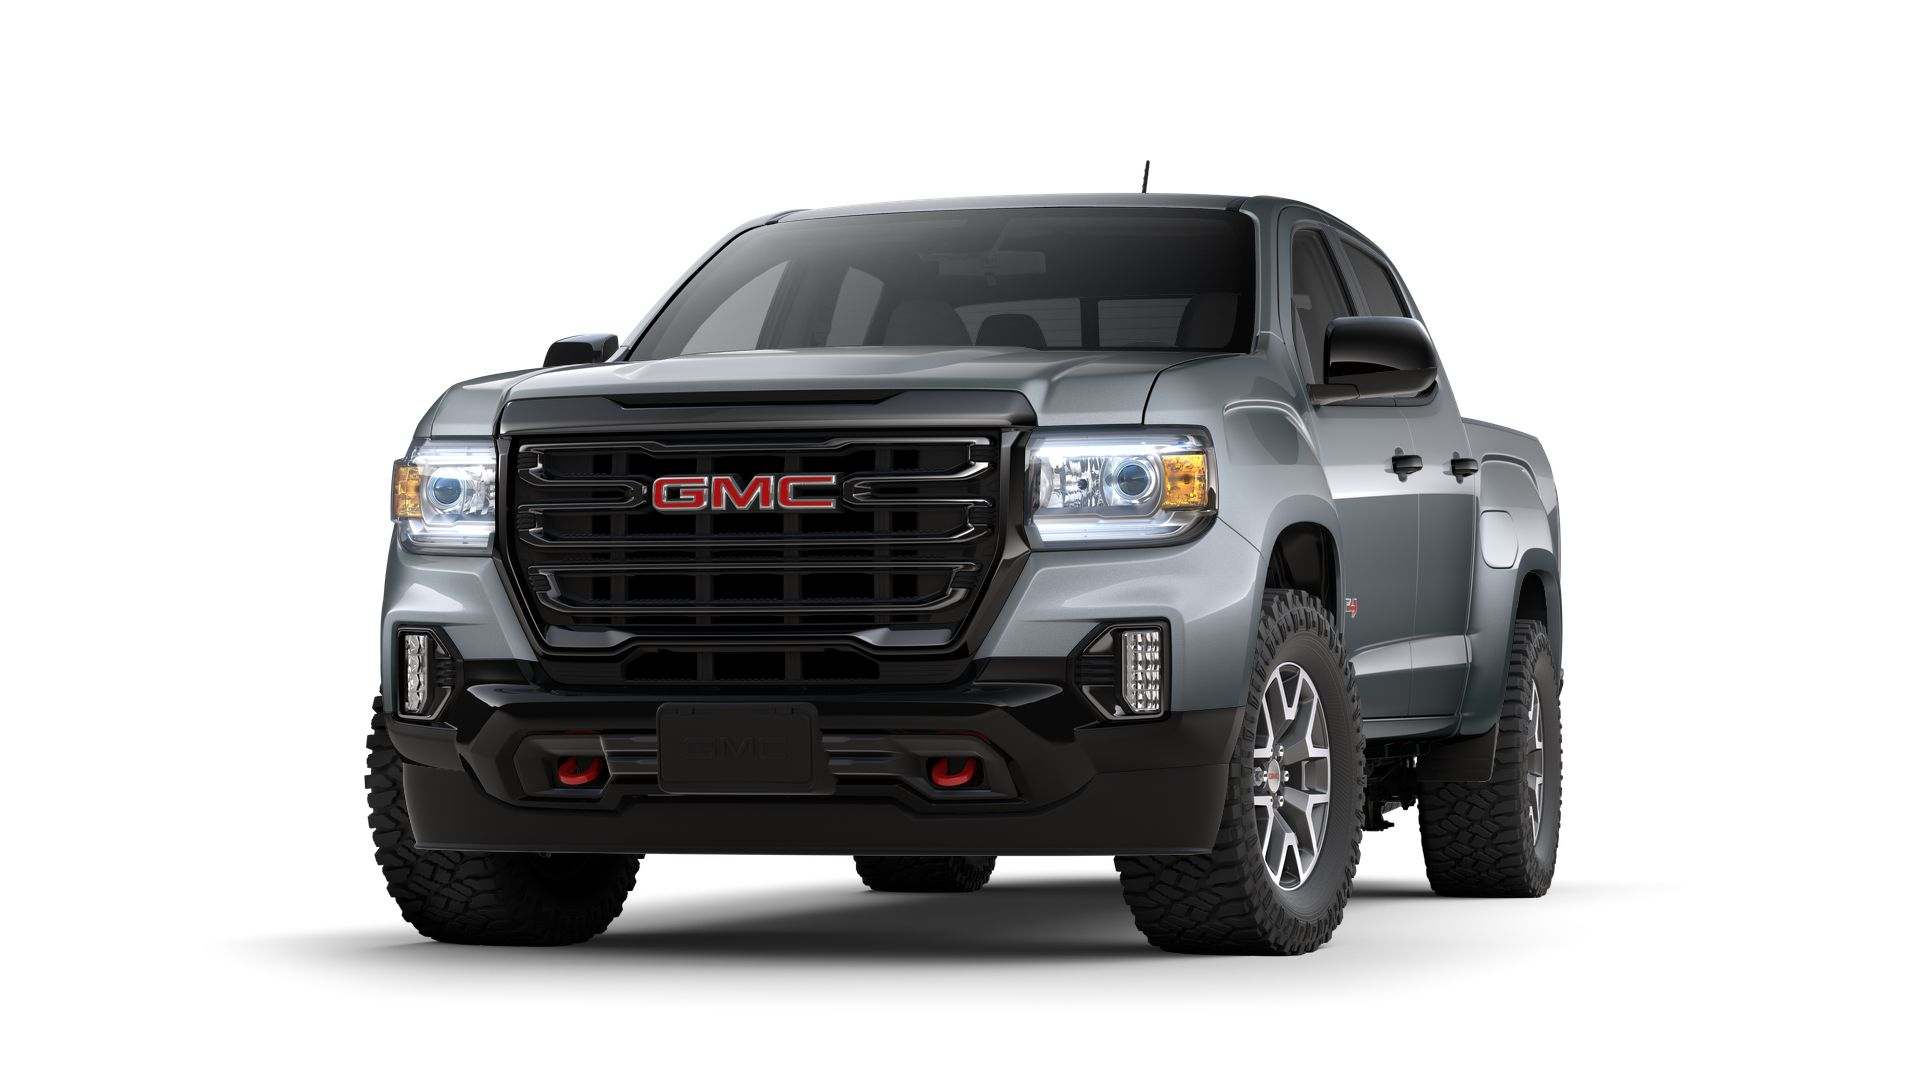 new gmc canyon for sale in round rock tx new gmc canyon for sale in round rock tx